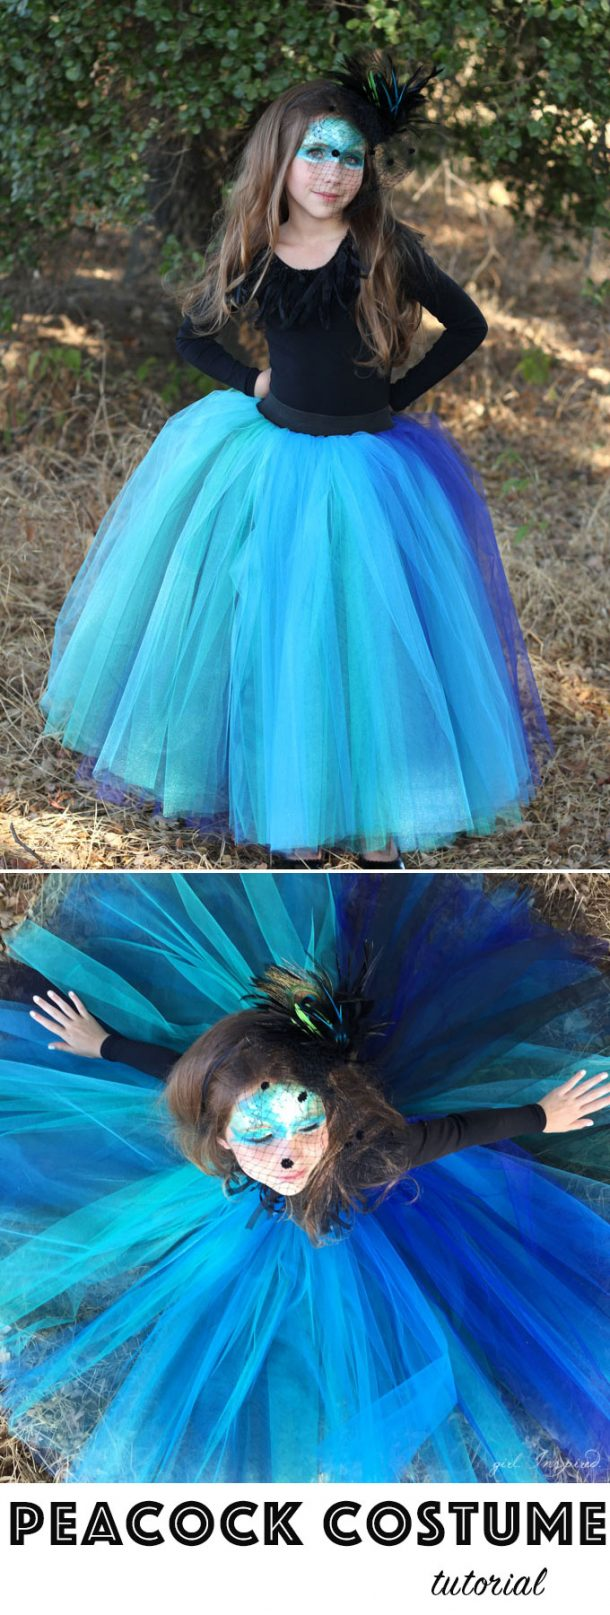 DIY Halloween Costumes Ideas - Beautiful and EASY Peacock Long Tutu Costume DIY Tutorial via girl. Inspired.